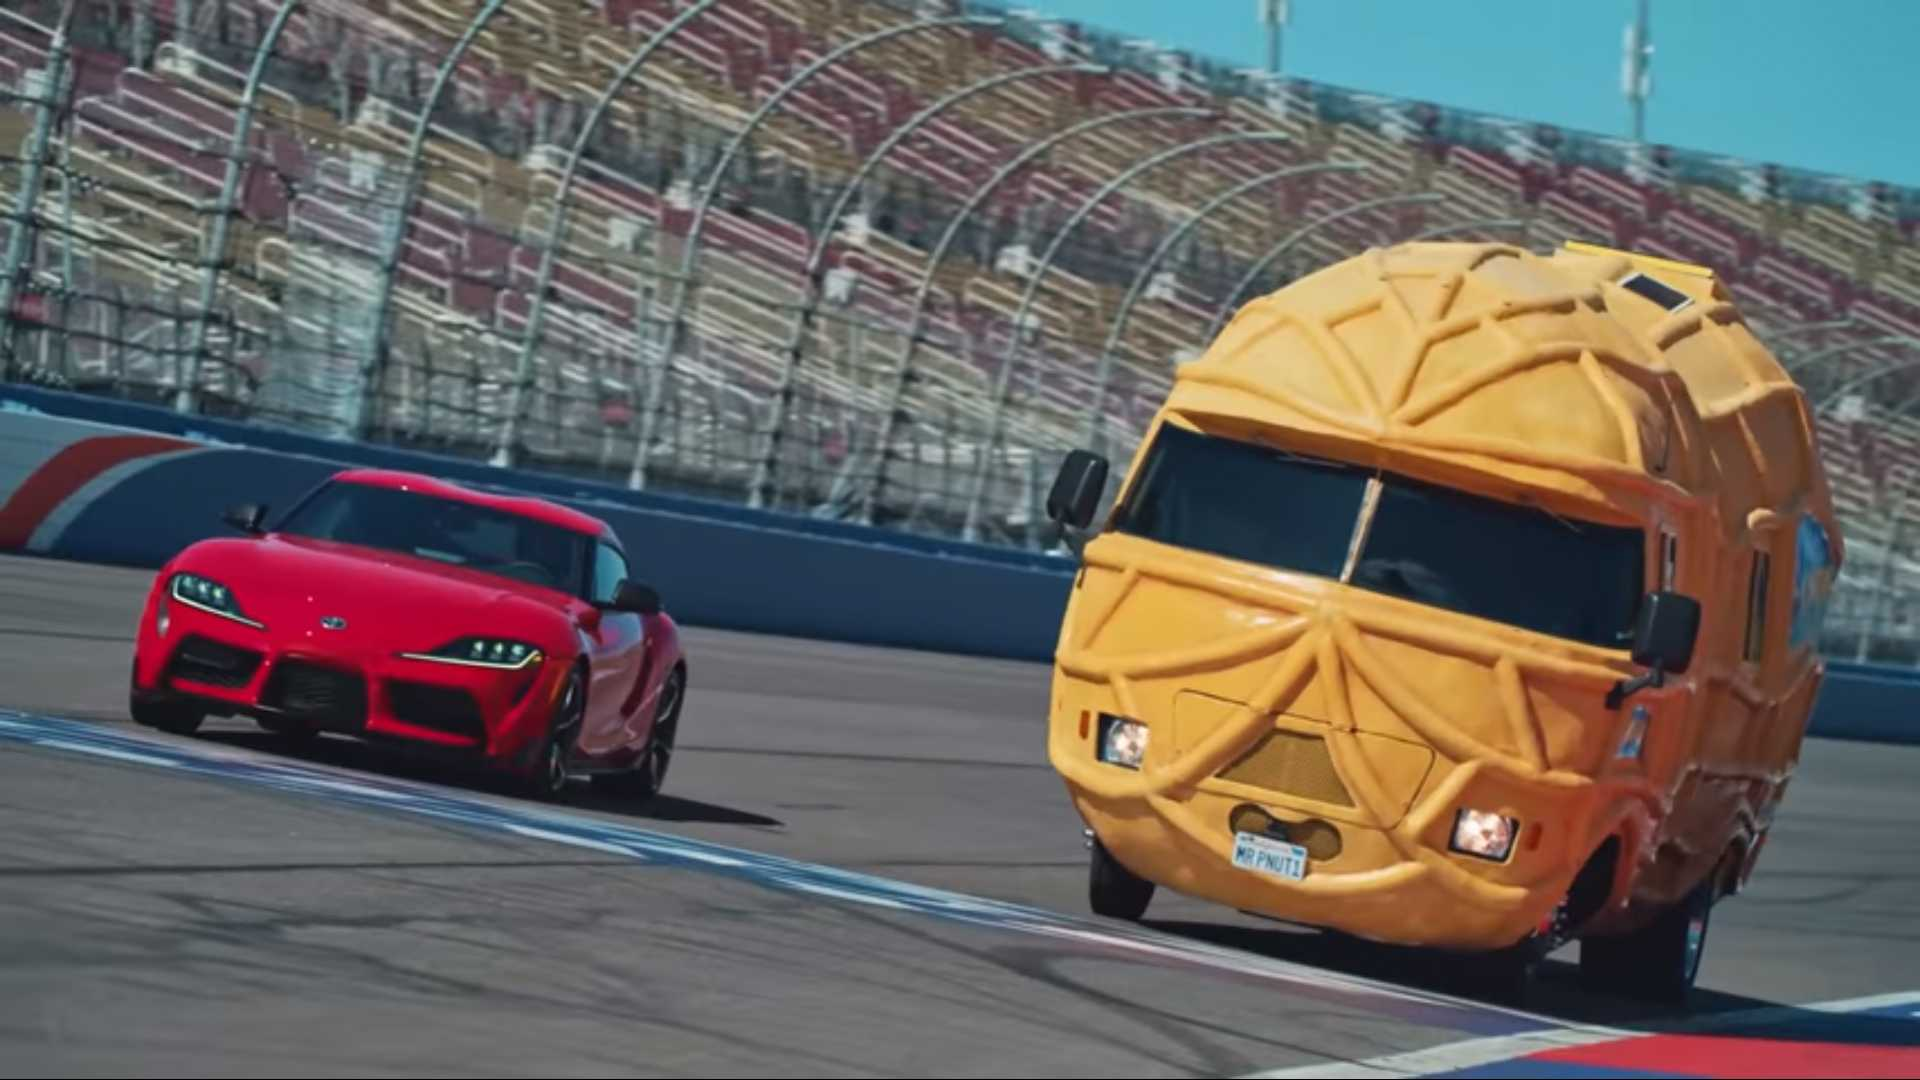 c7950a48be Toyota Supra Takes On Mr. Peanut In Absolutely Nuts Race